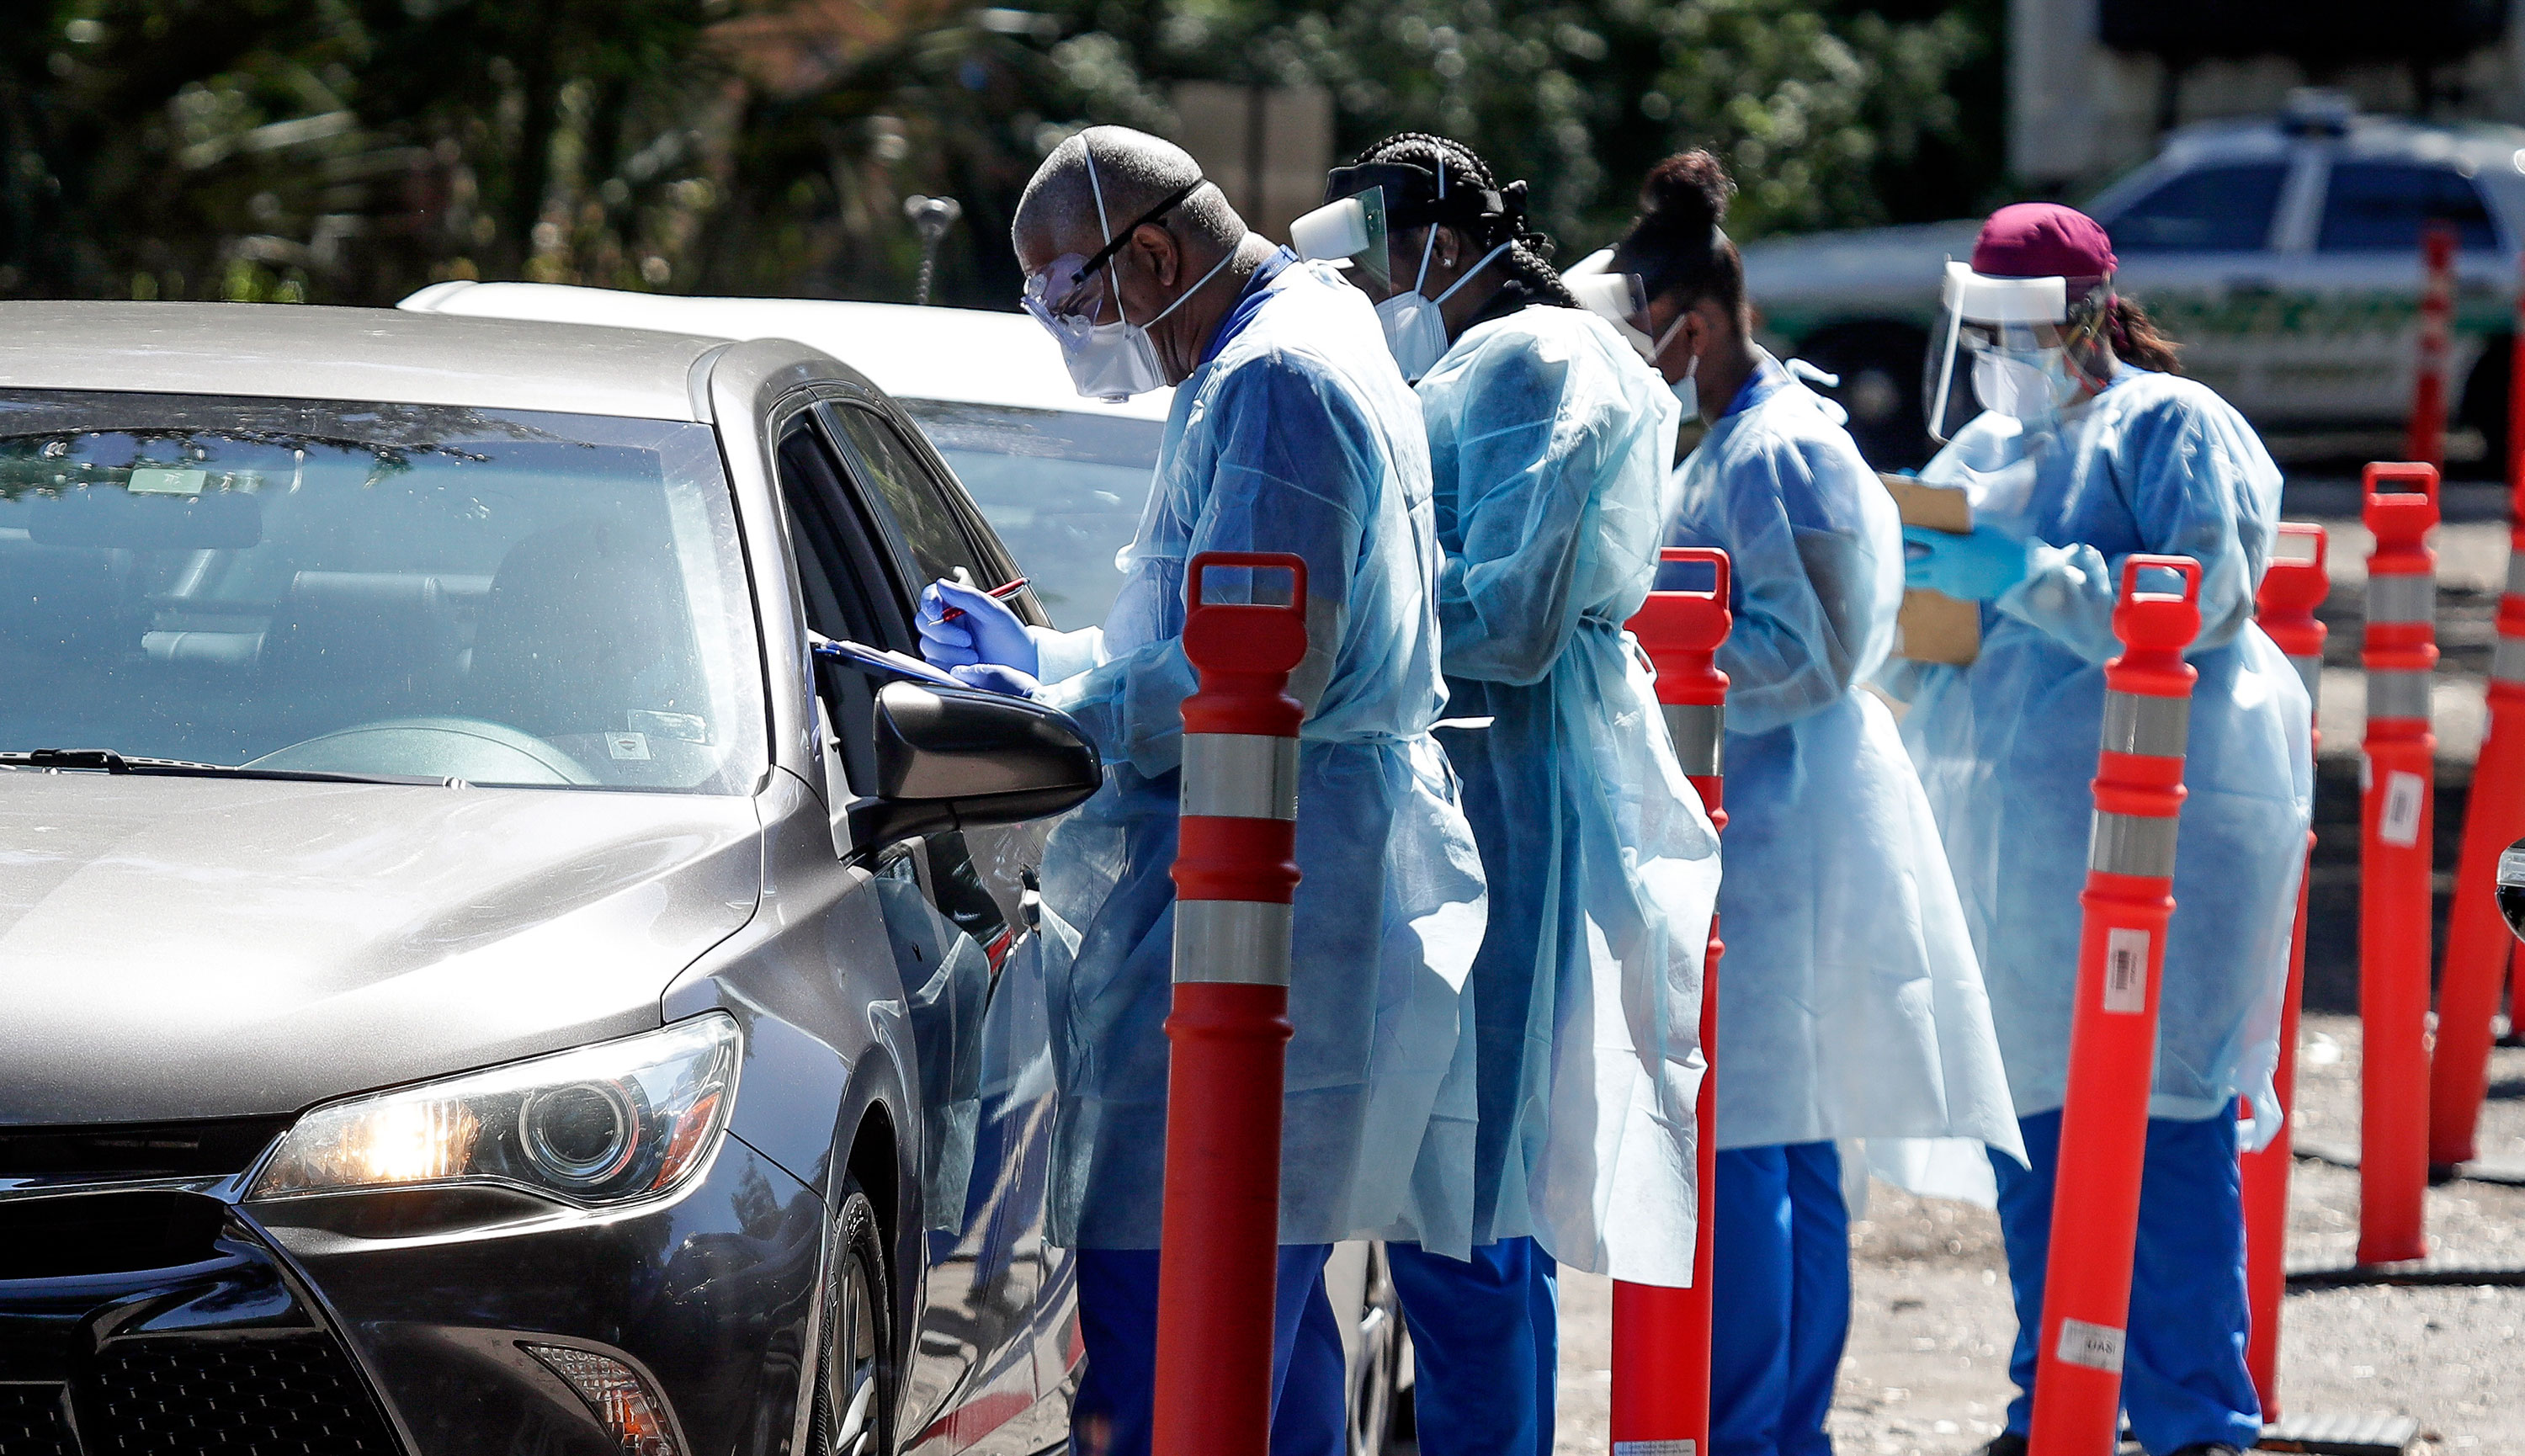 Health workers conduct Covid-19 tests at a drive-through testing site in Sanford, Florida on April 27.